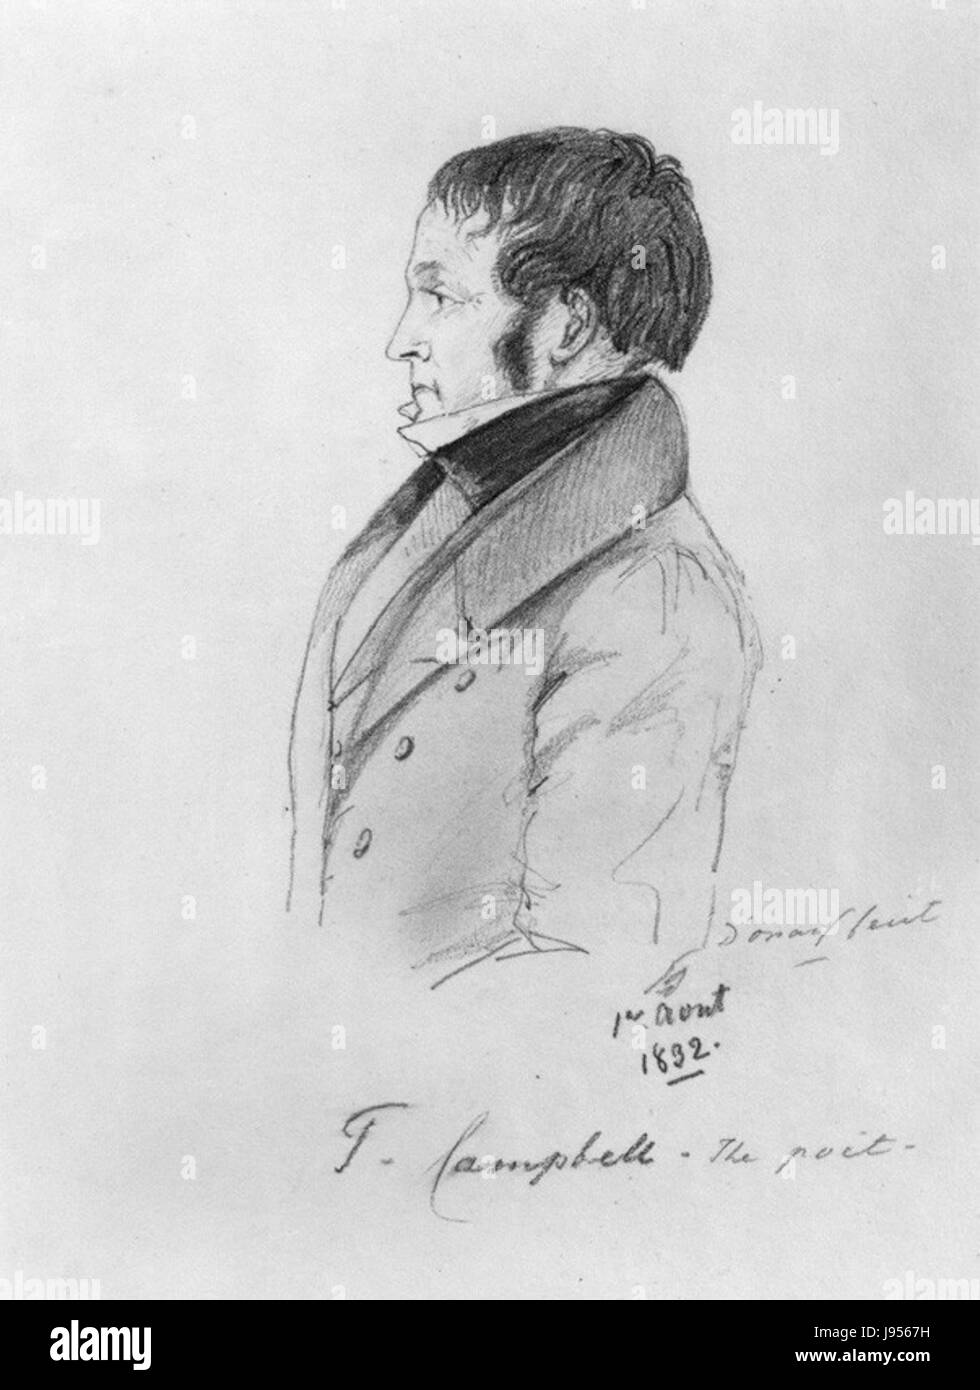 Thomas Campbell by Alfred, Count D'Orsay - Stock Image